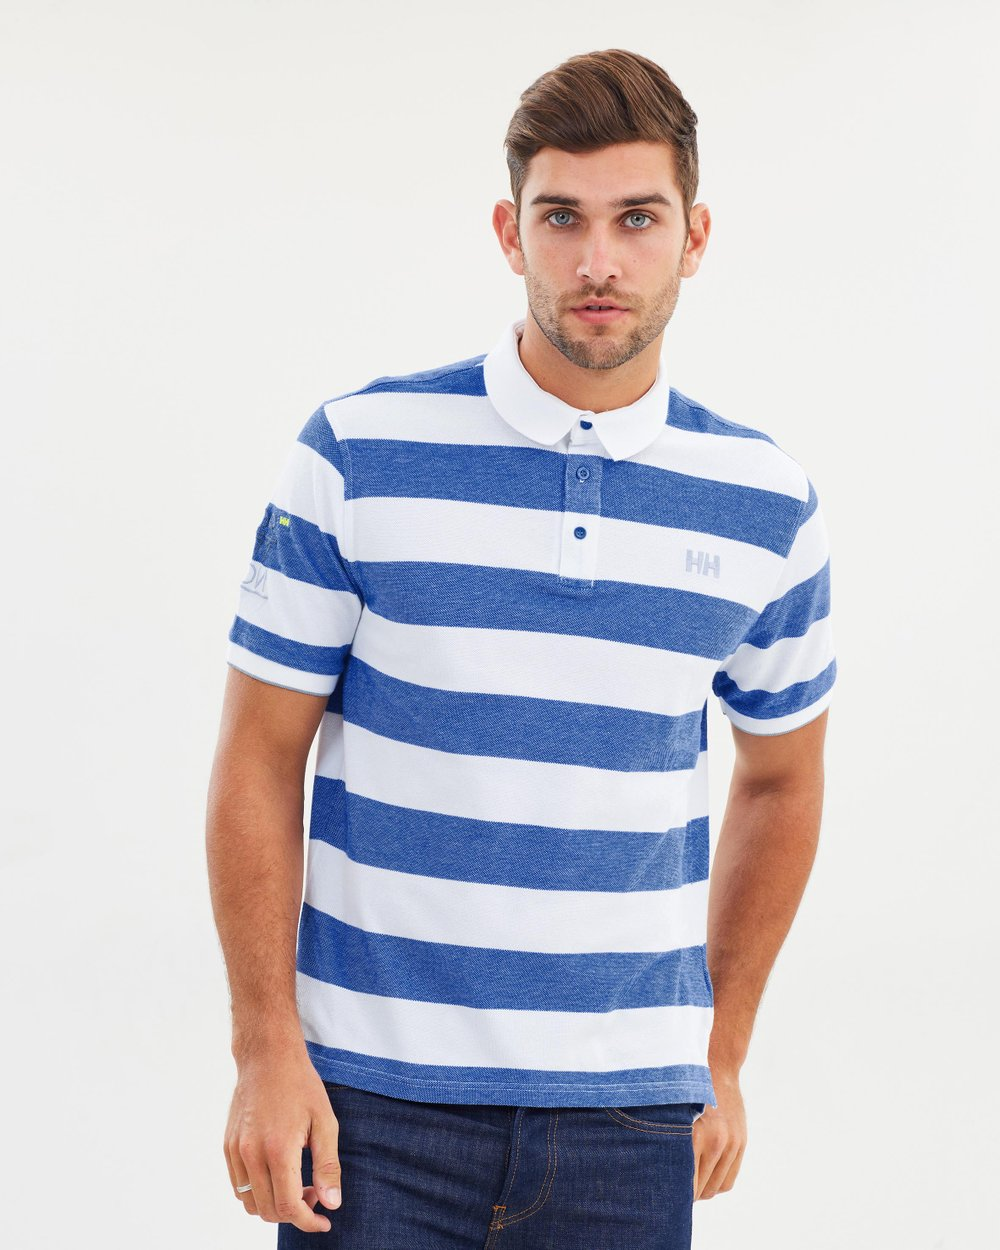 8a15158b0 Marstrand Polo by Helly Hansen Online